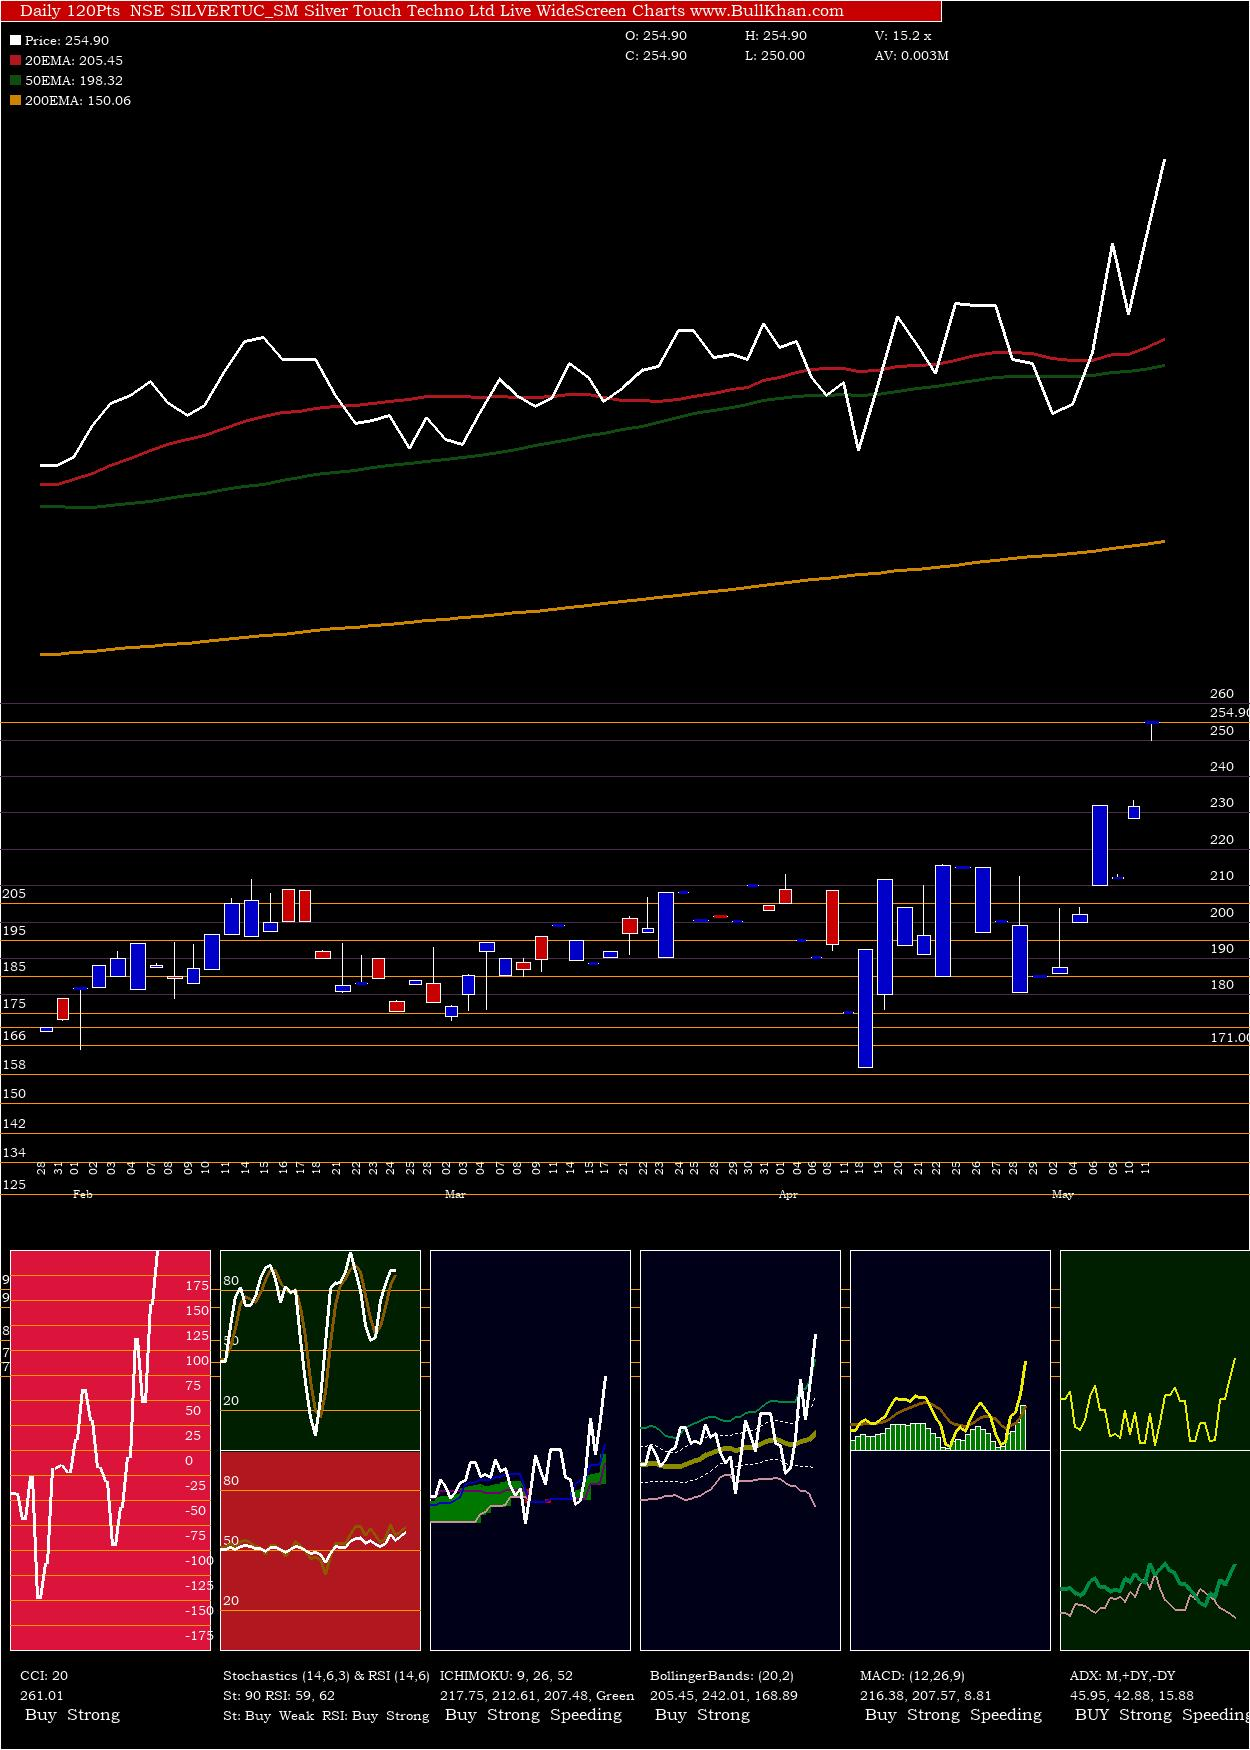 Silver Touch charts and indicators